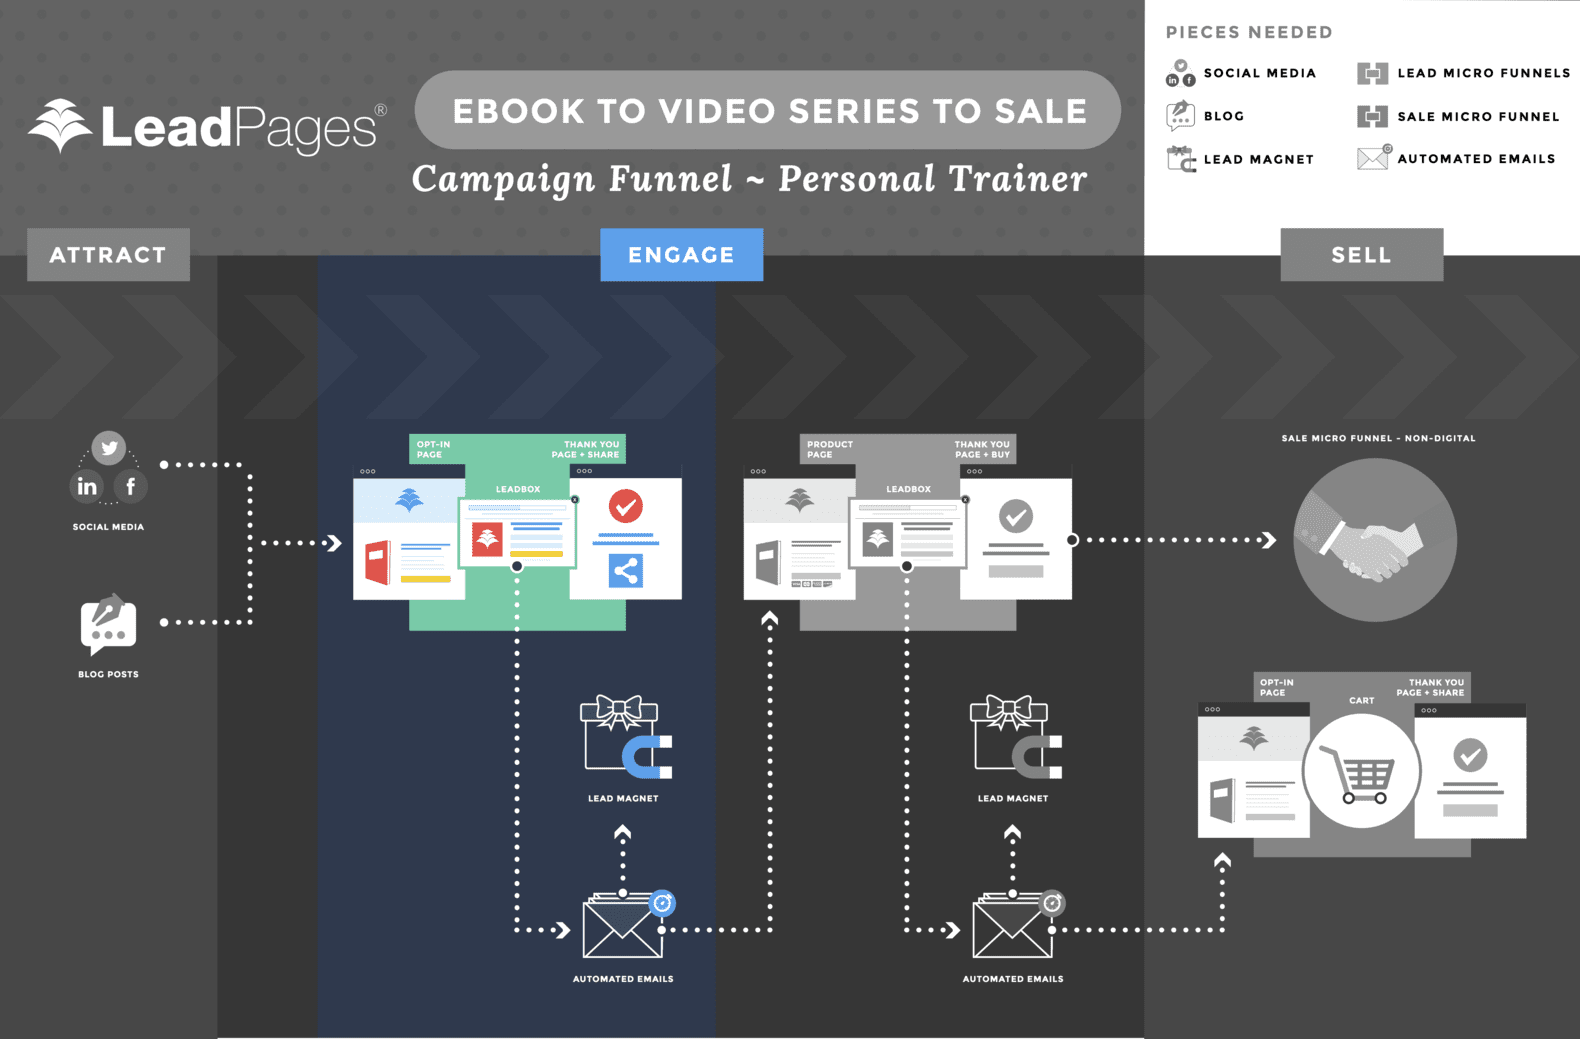 personal-trainer-funnel-engage-1